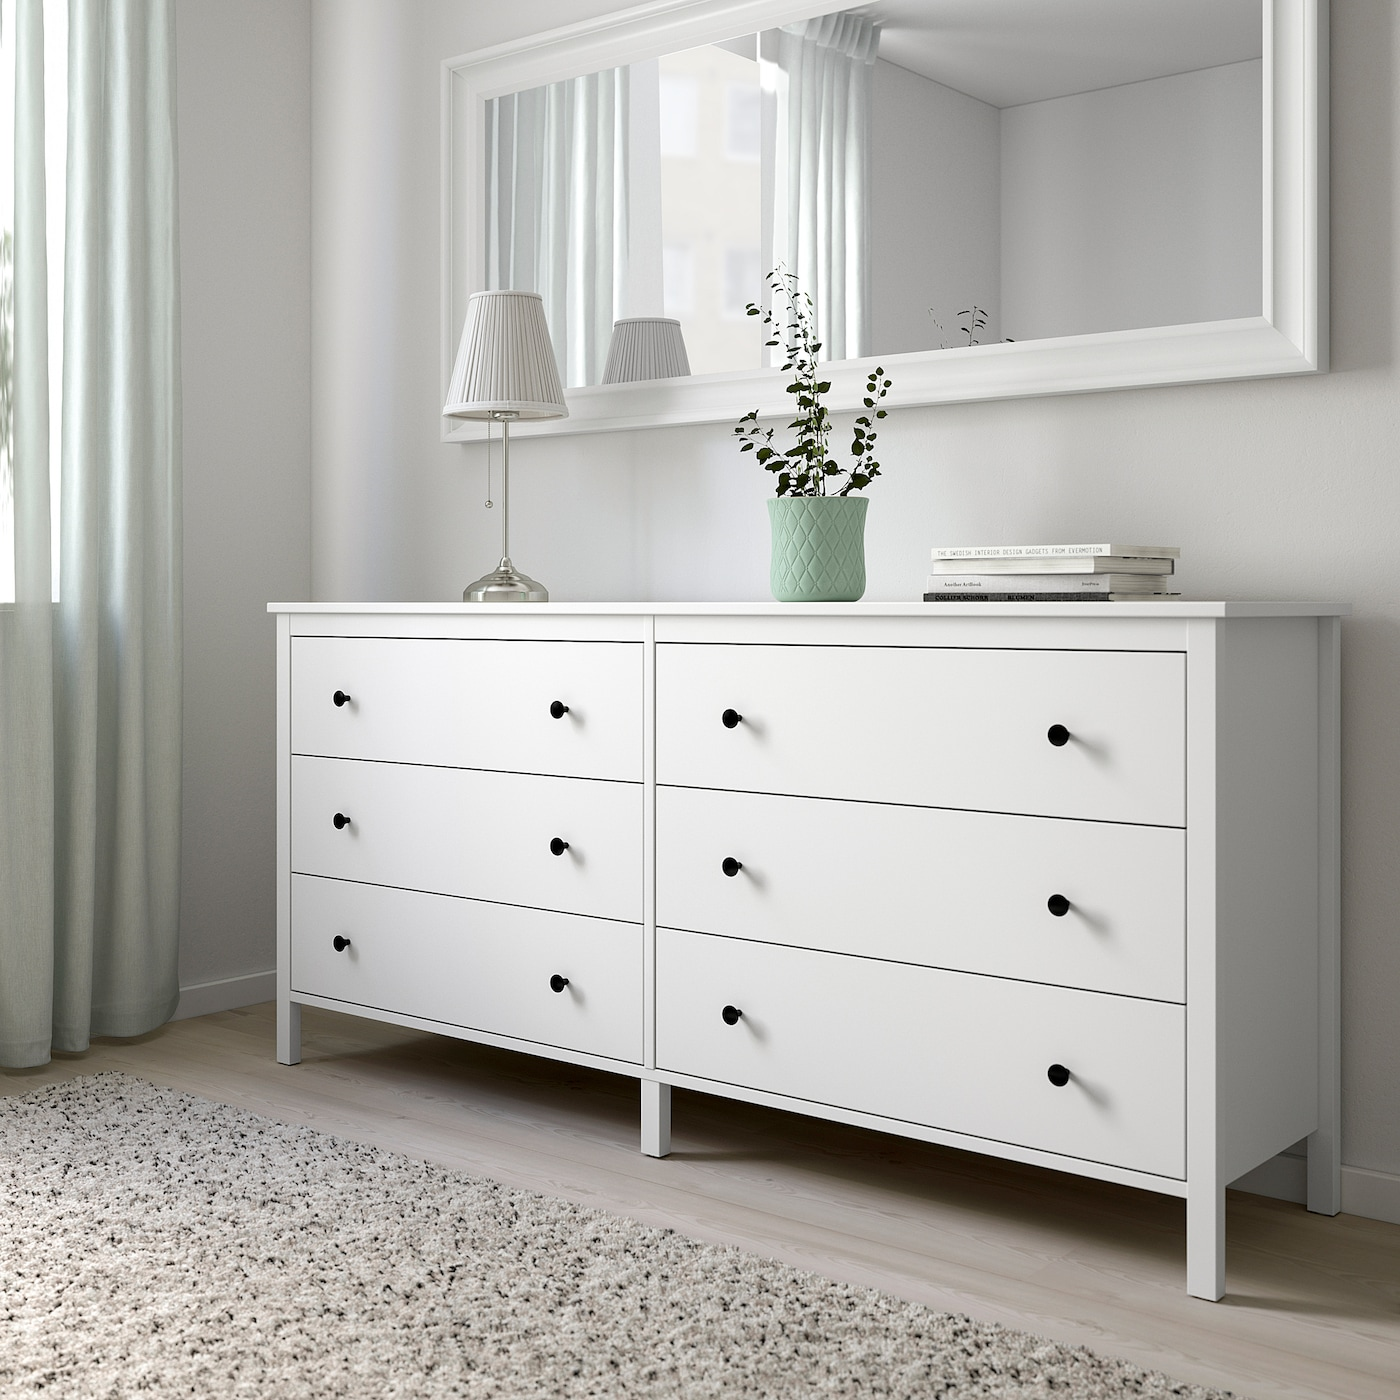 KOPPANG Chest of 6 drawers, white, 172x83 cm